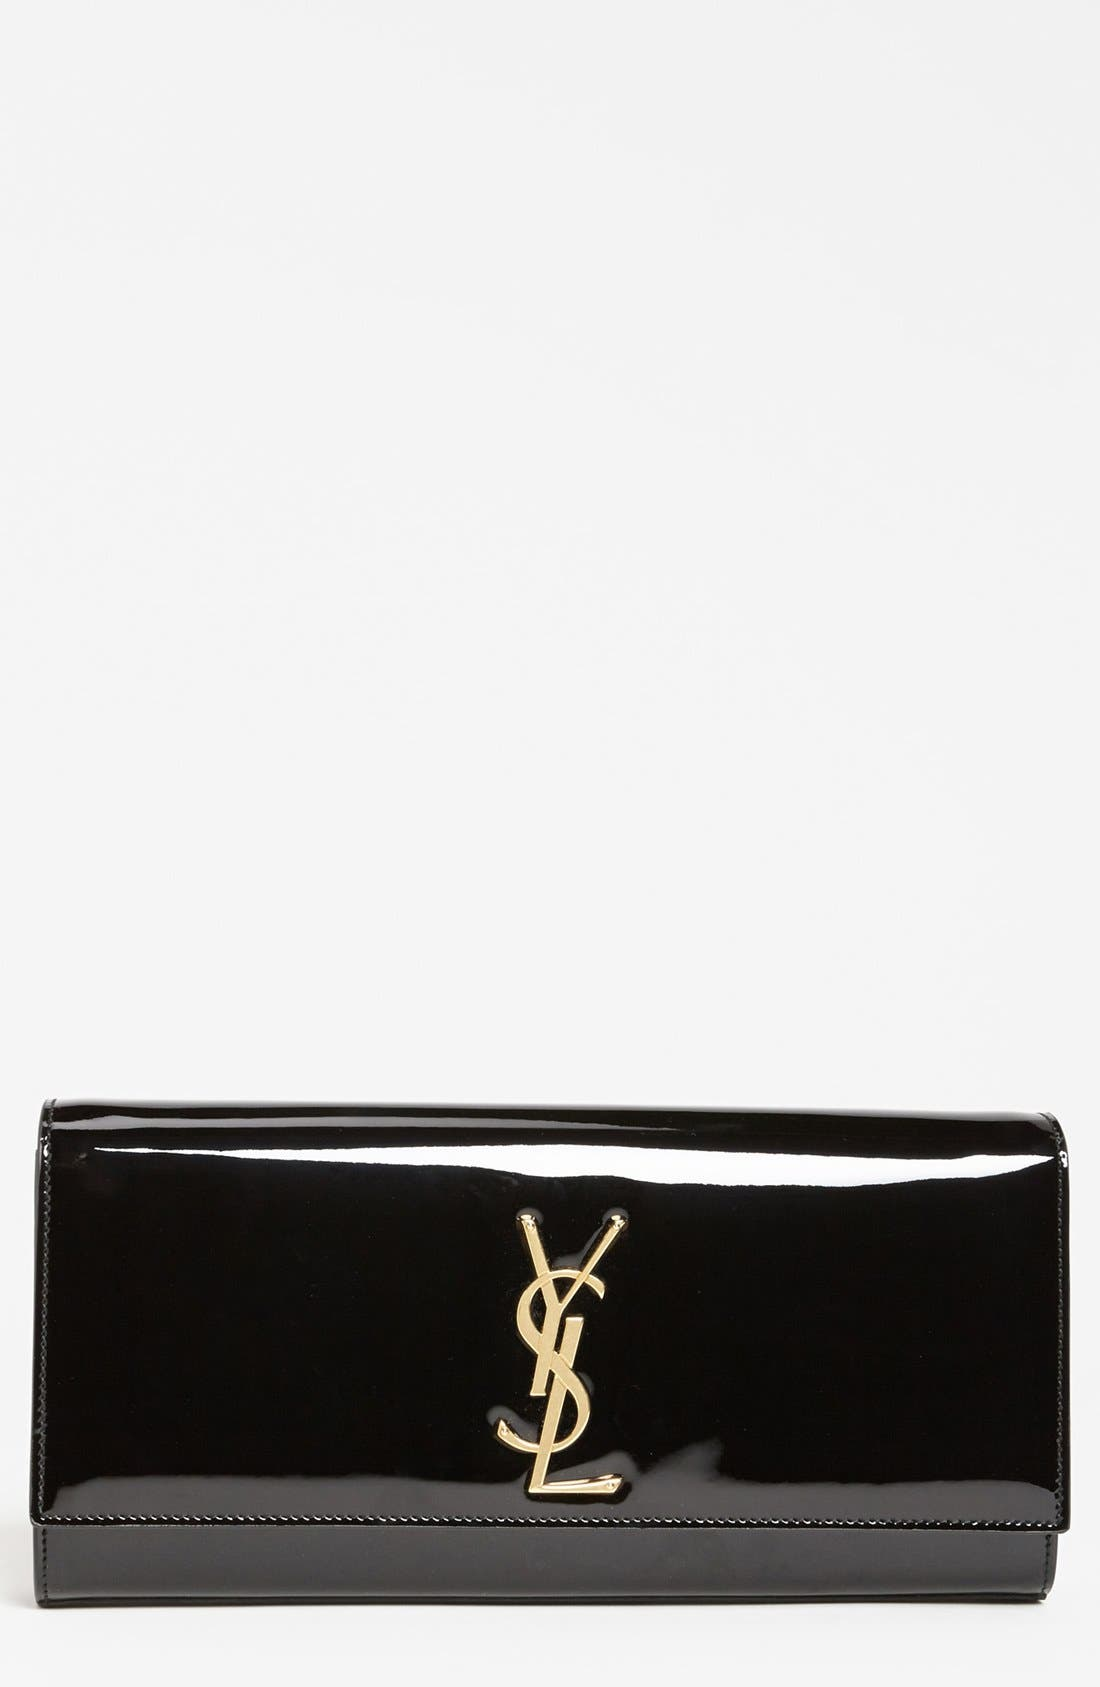 Main Image - Saint Laurent 'Cassandre - Laque' Leather Clutch